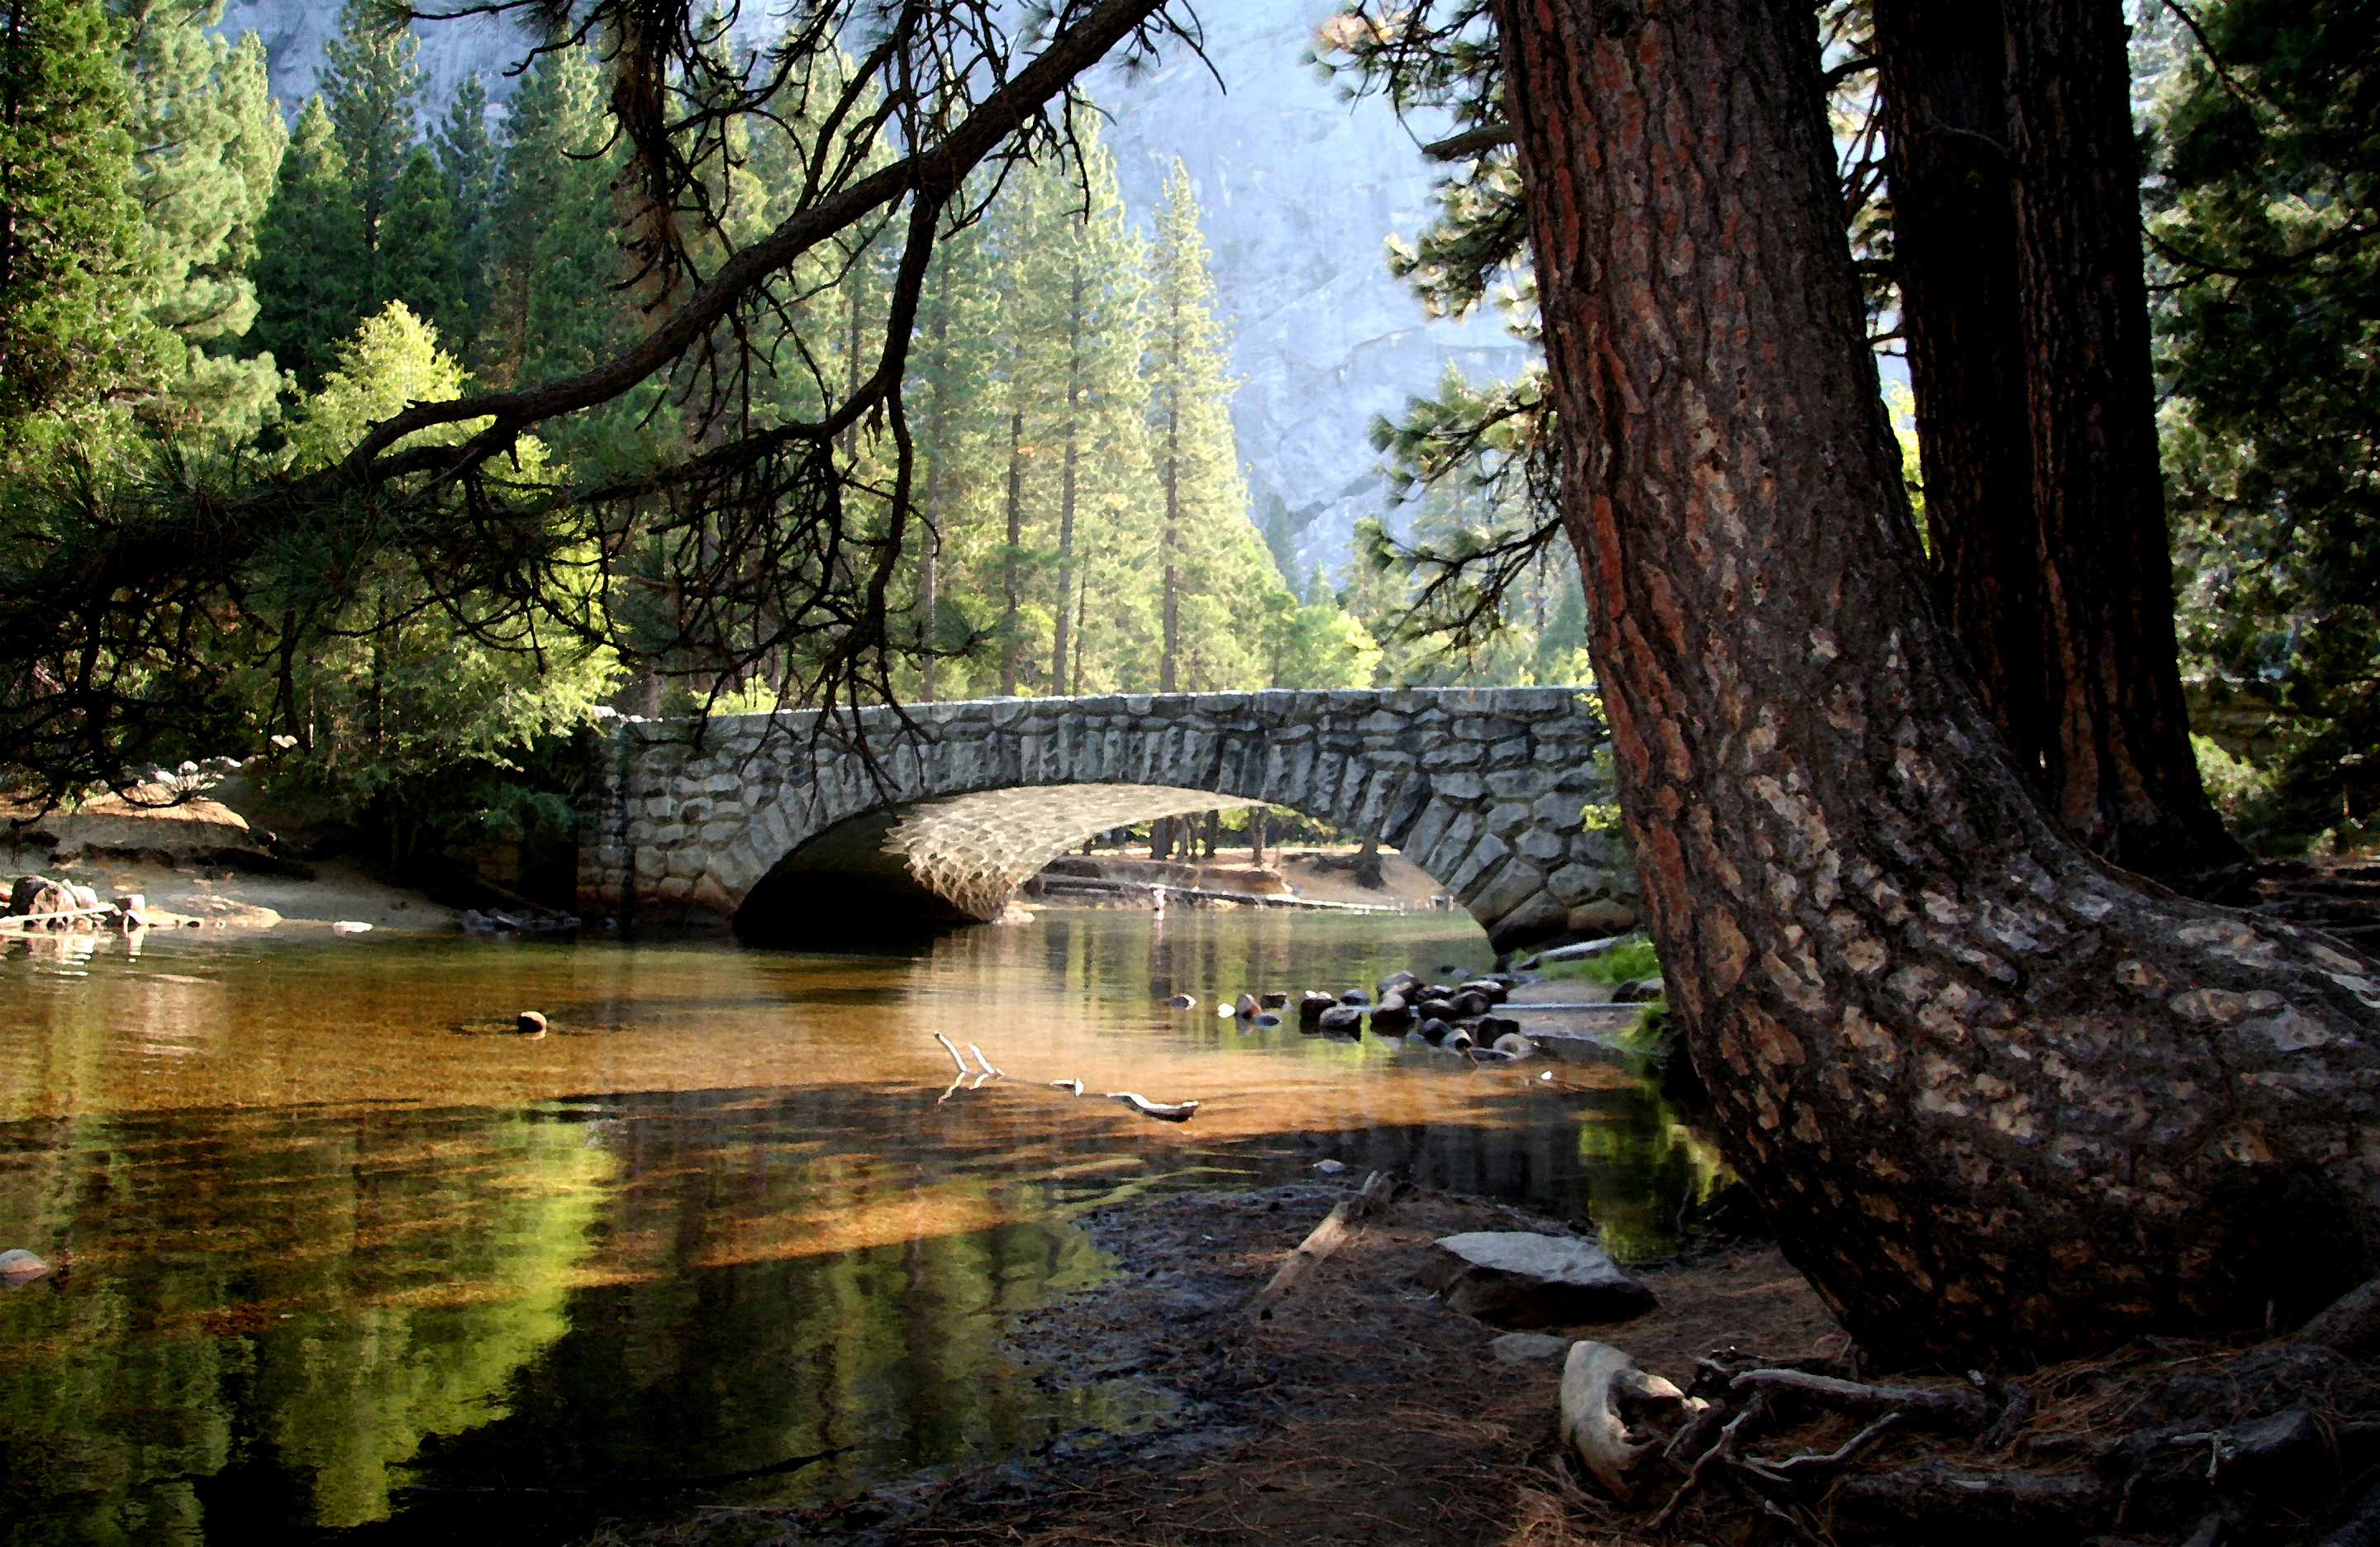 Stone Bridge at Yosemite